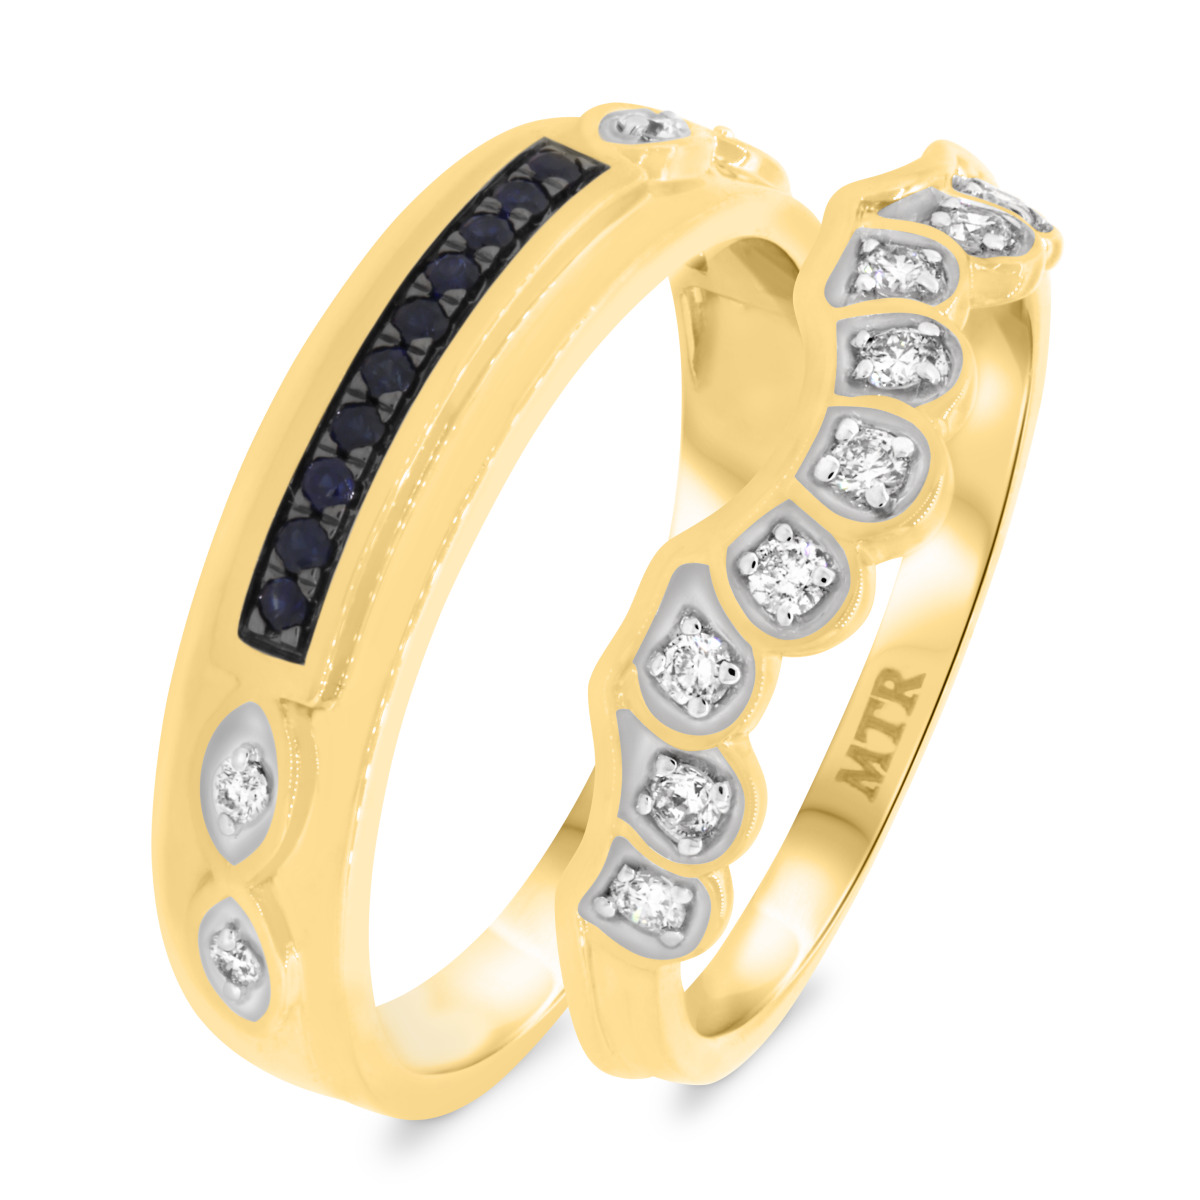 1/5 CT. T.W. Diamond Matching Wedding Band Set 14K Yellow Gold